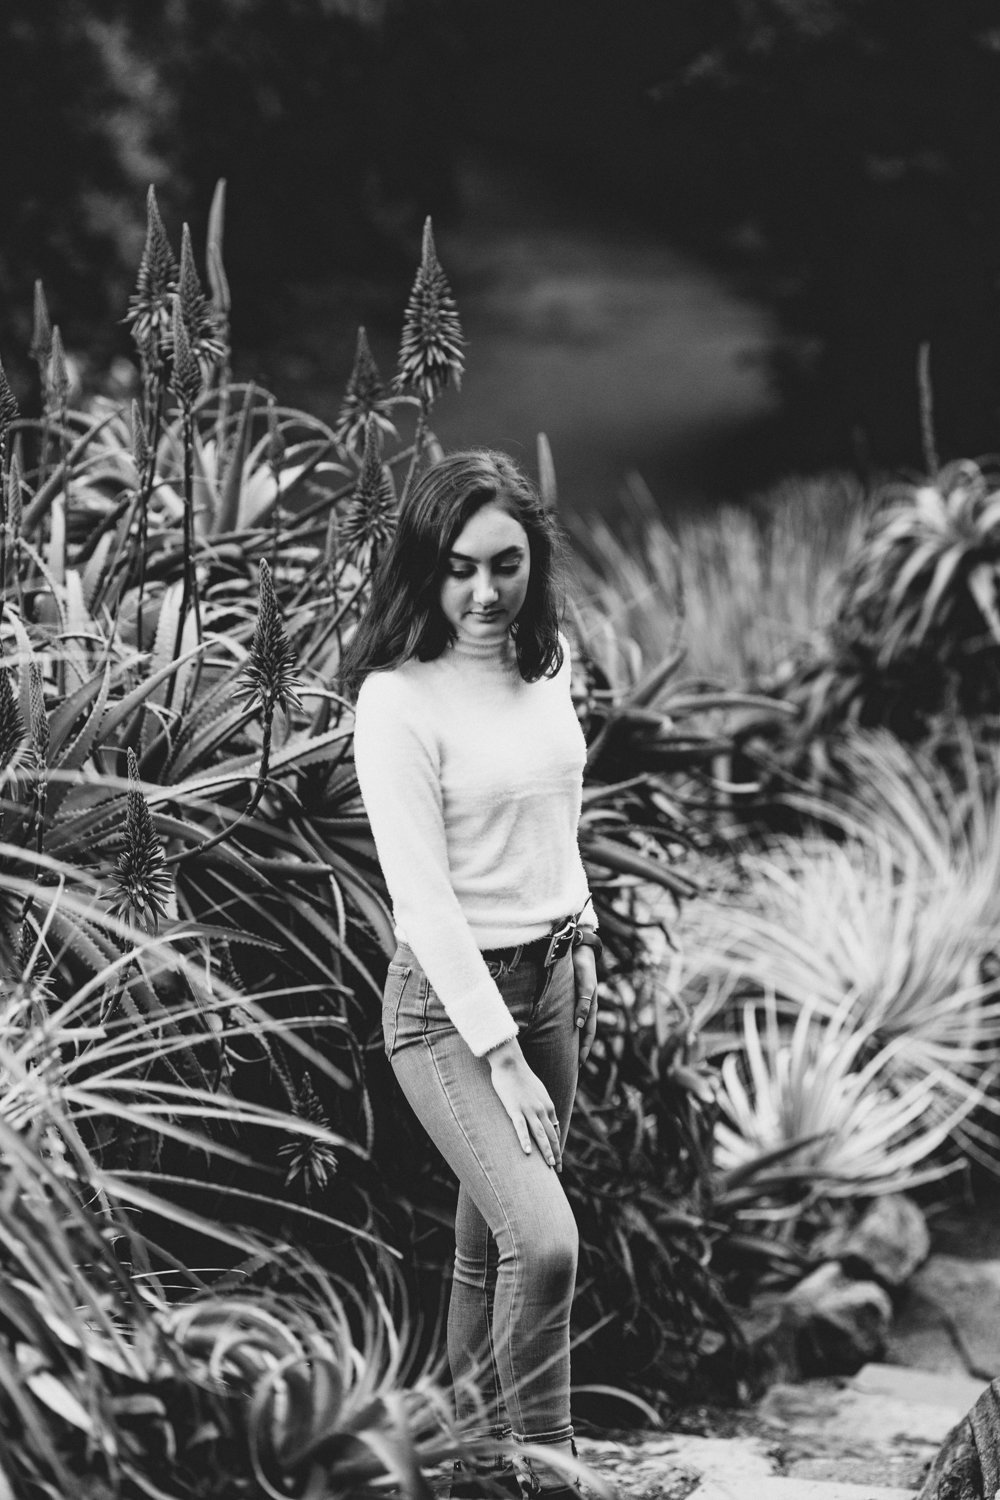 san-francisco-senior-portrait-botanical-garden-danielle-motif-photography-60